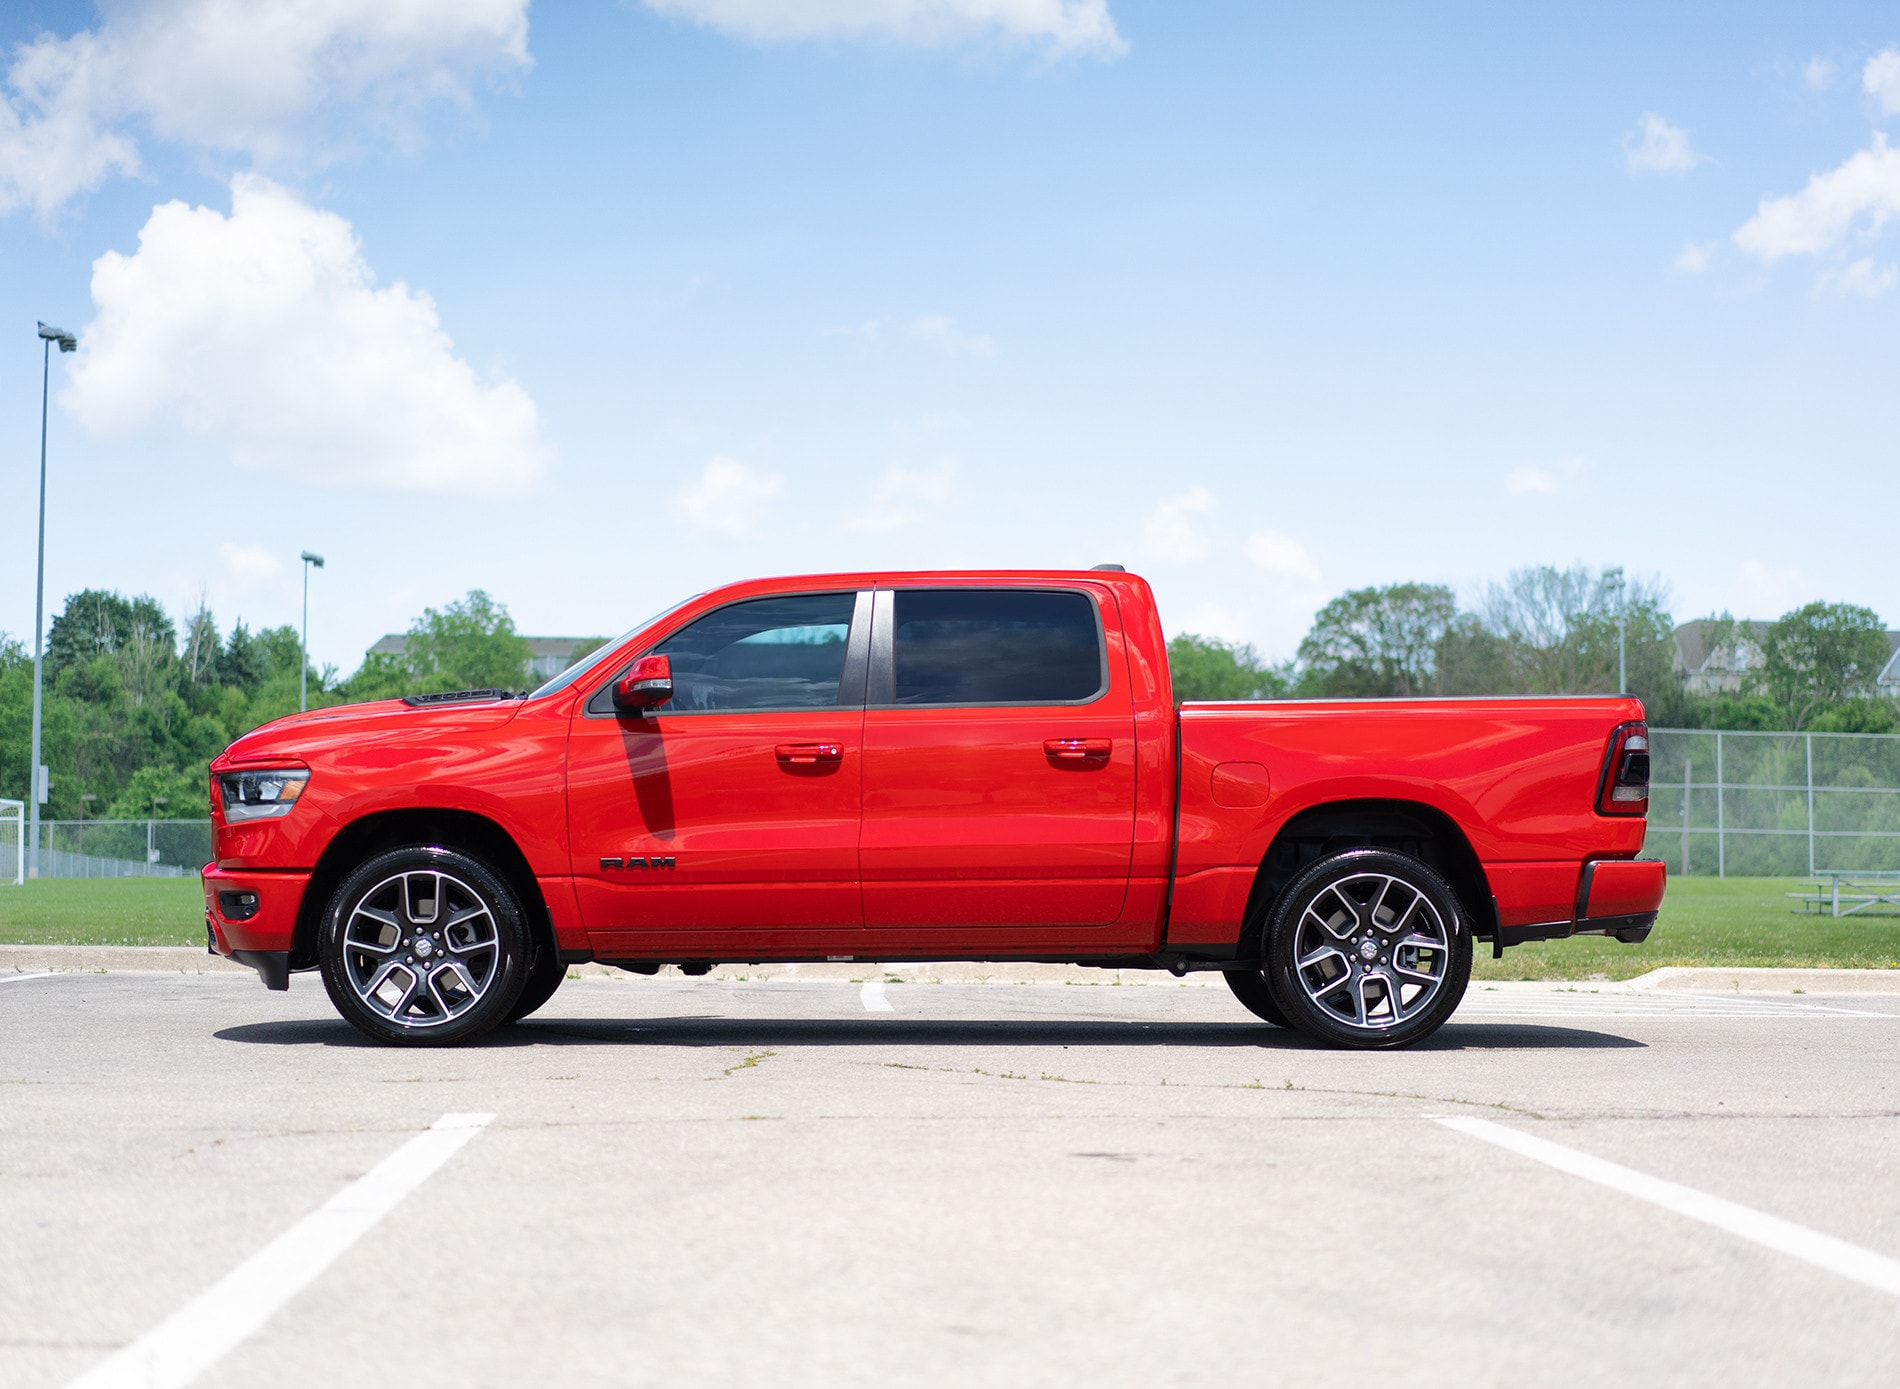 2020 Red Ram Sport Side View